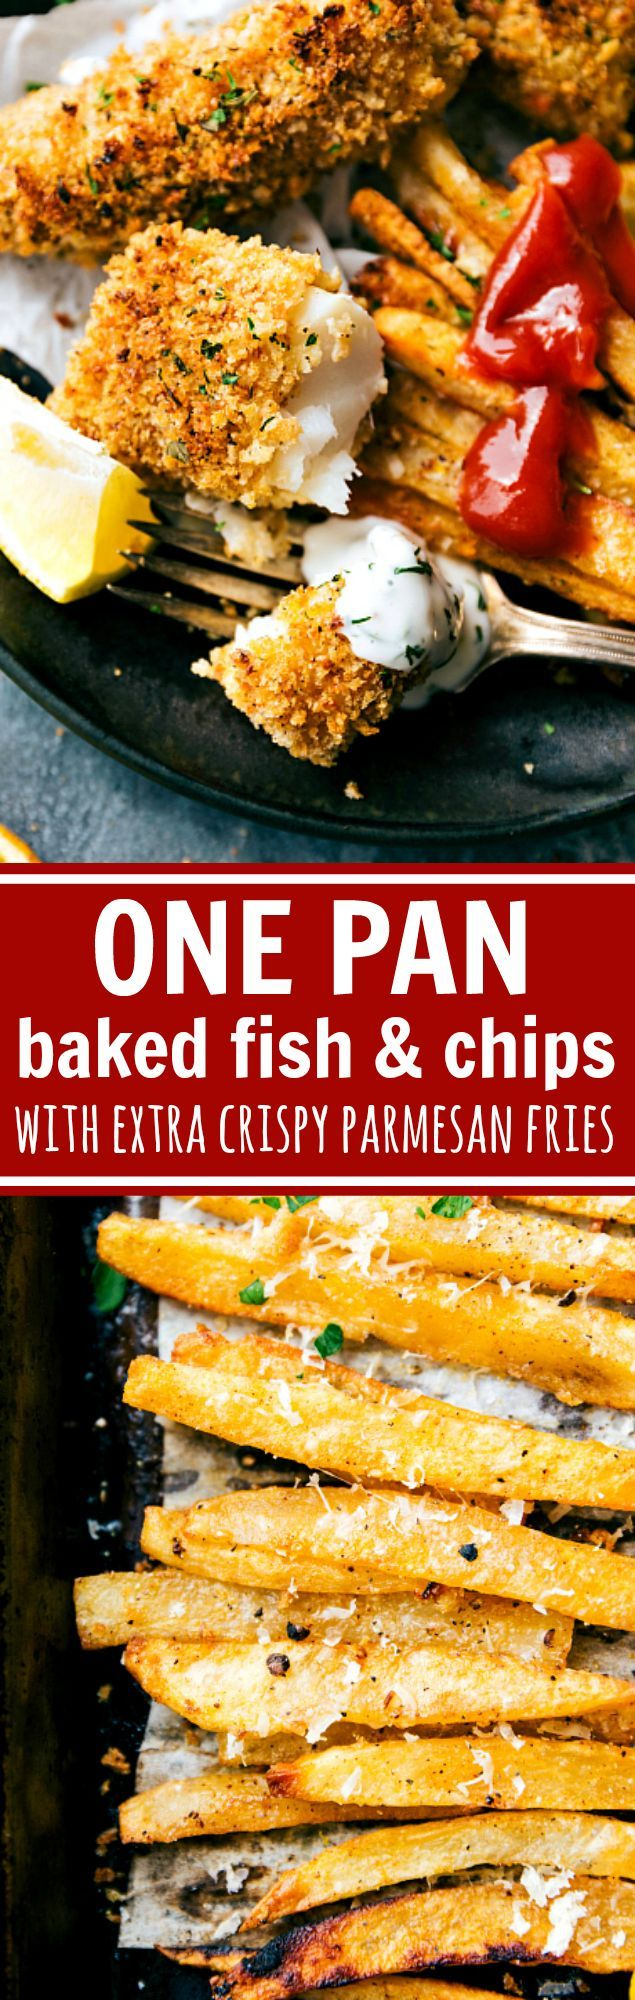 A quick and delicious take on fish and chips -- all baked on just ONE pan. This version is healthier because it isn't baked, but it certainly isn't lacking on flavor! The fries are ultra crispy and flavorful, the fish has a secret hack to make it seem fried, and all prep is done in under 30 minutes. Plus a quick homemade tartar sauce (optional to make) that takes no more than 5 minutes to assemble. Recipe via chelseasmessyapron.com